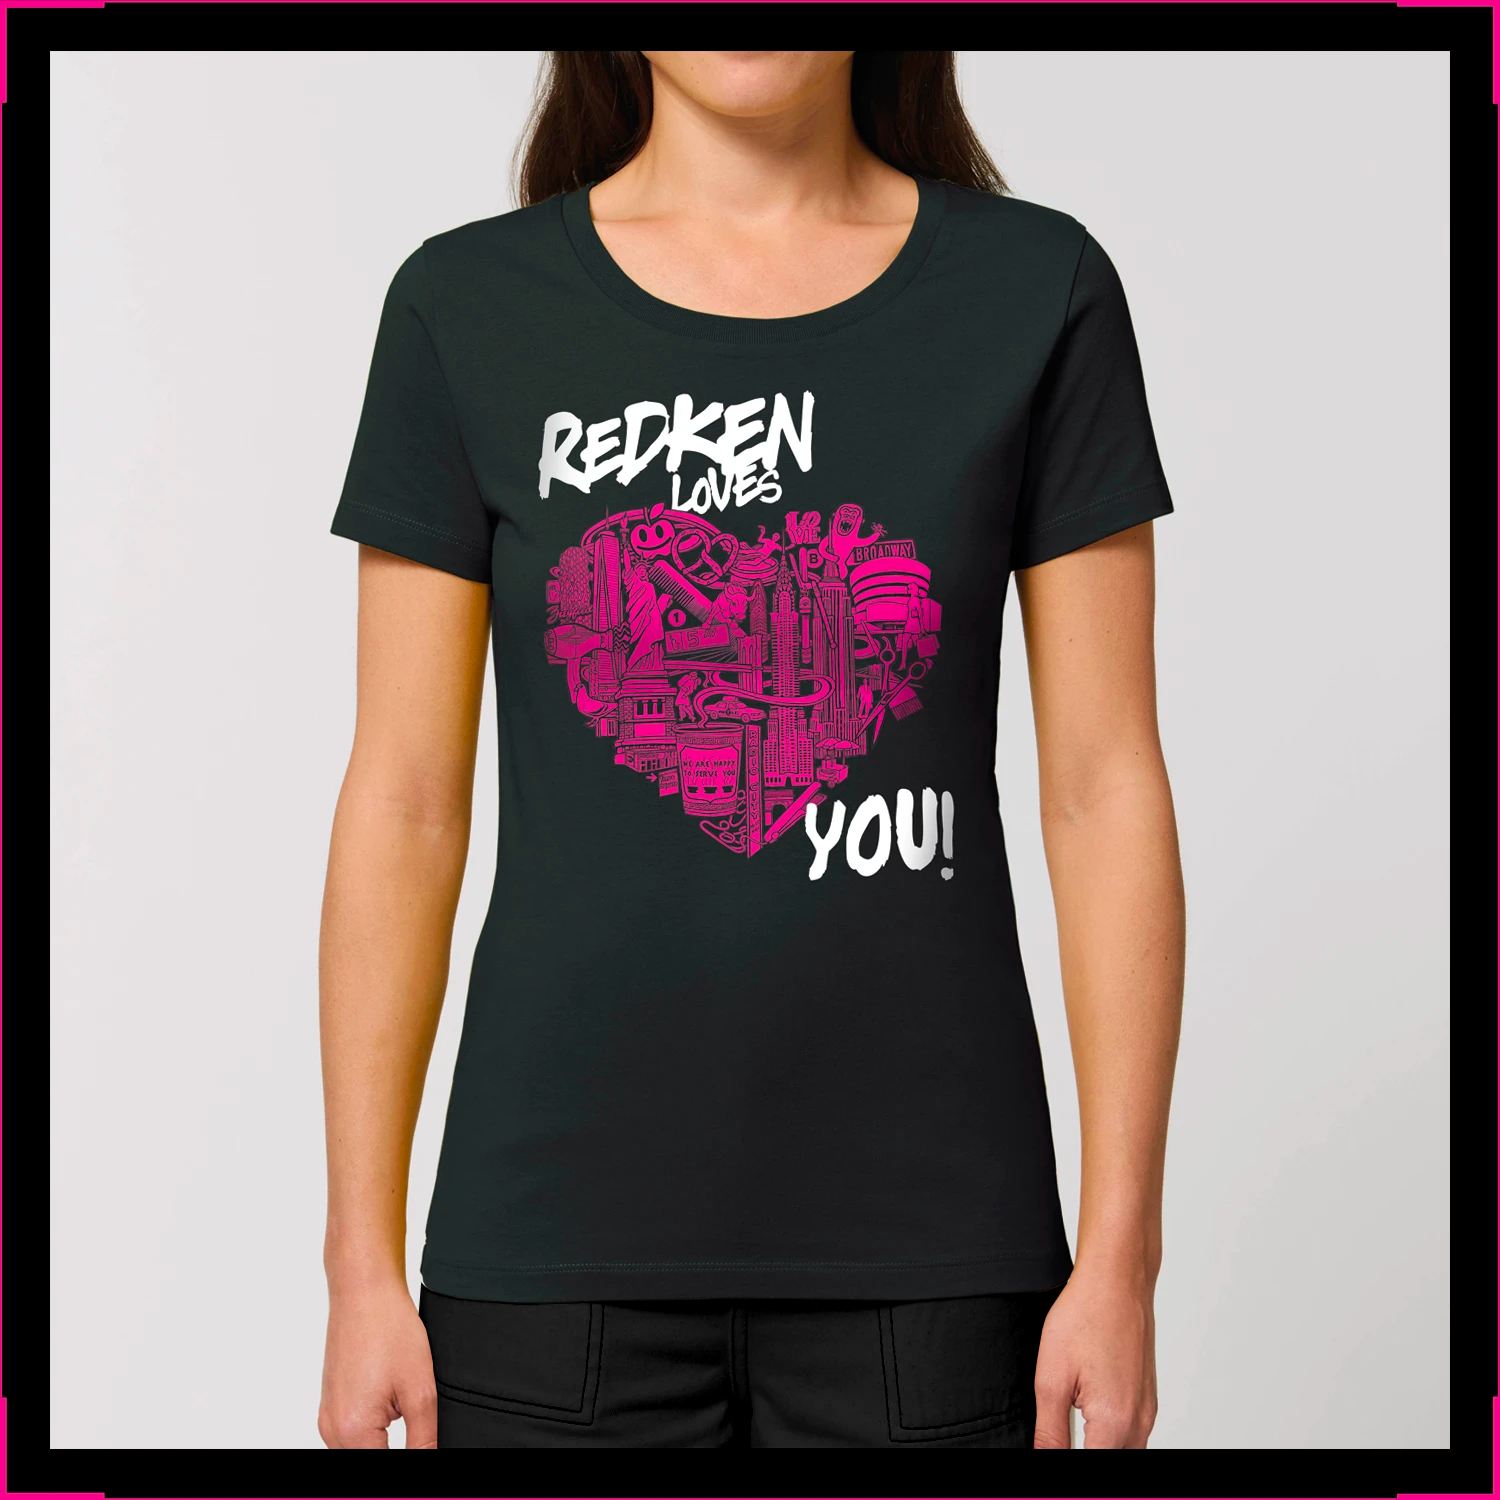 T-shirt Womens Redken Loves You